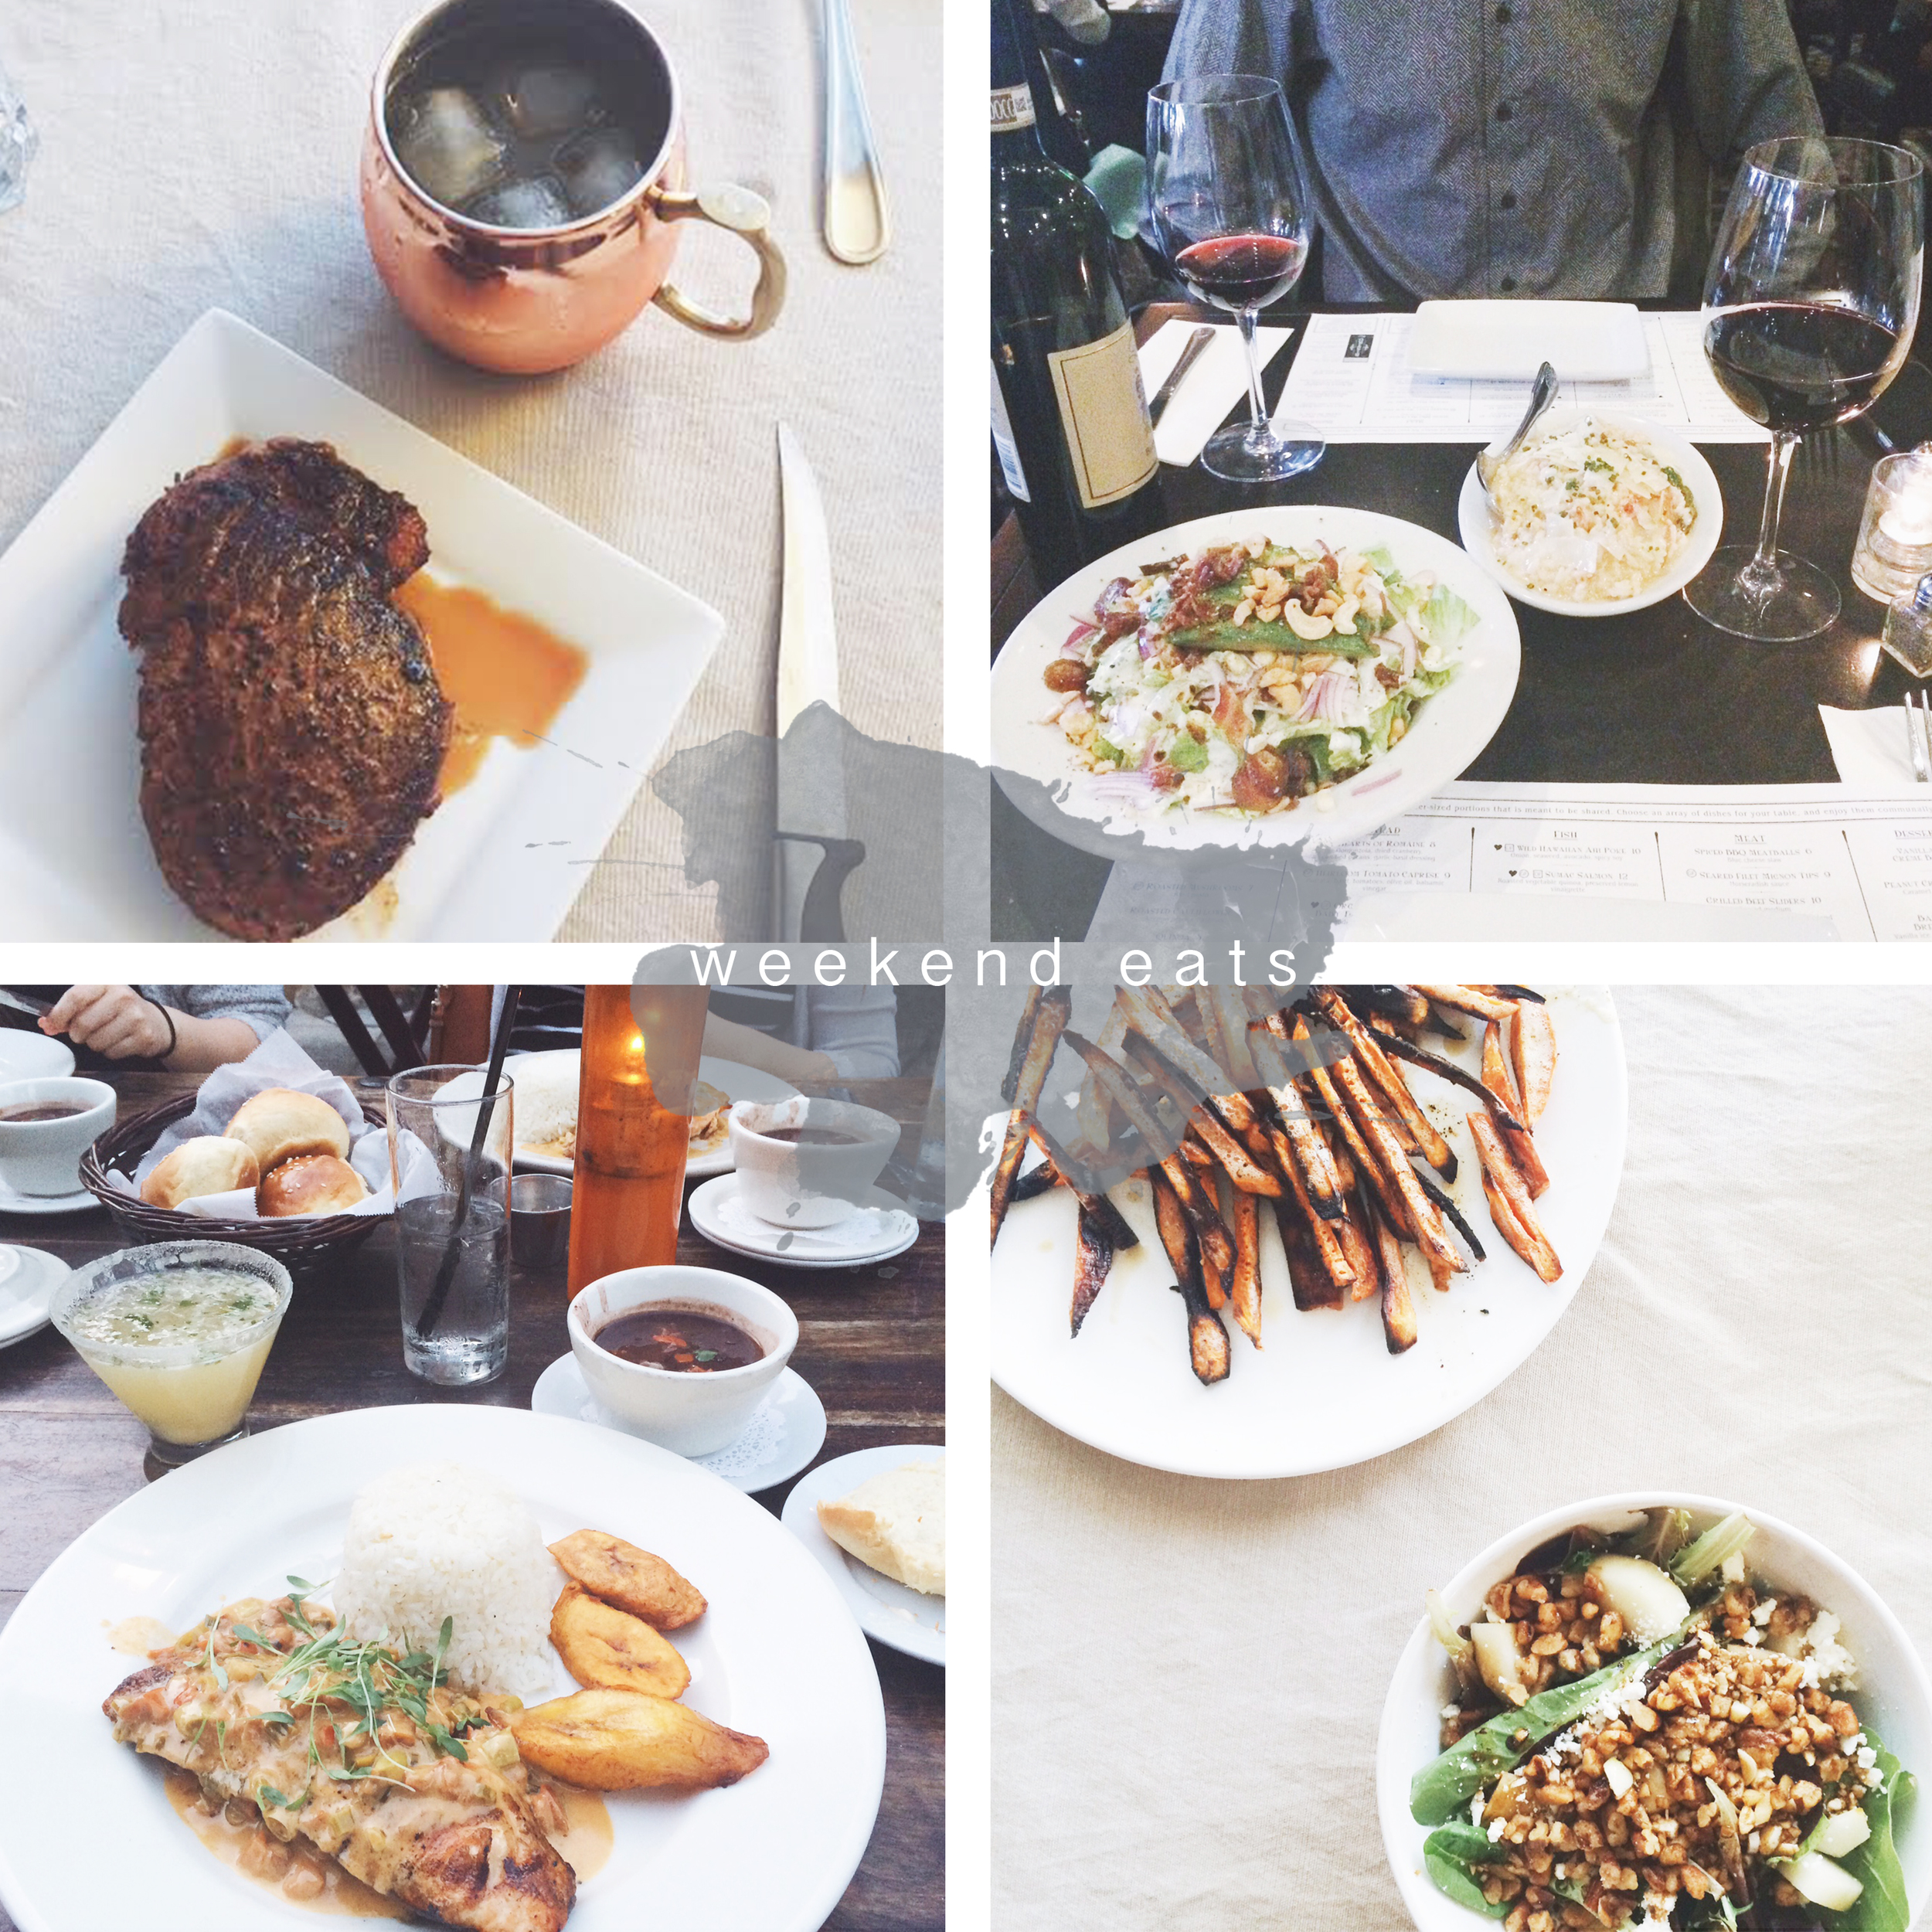 1. Home cookedFilet mignon & hand crafted Moscow Mule2. Bacon & date salad, lobster penne pasta and red wine at K'ya Bistro 3. Salmon a La Parilla at Habana 4. Pear pecan salad & sweet potato fries by Patrick